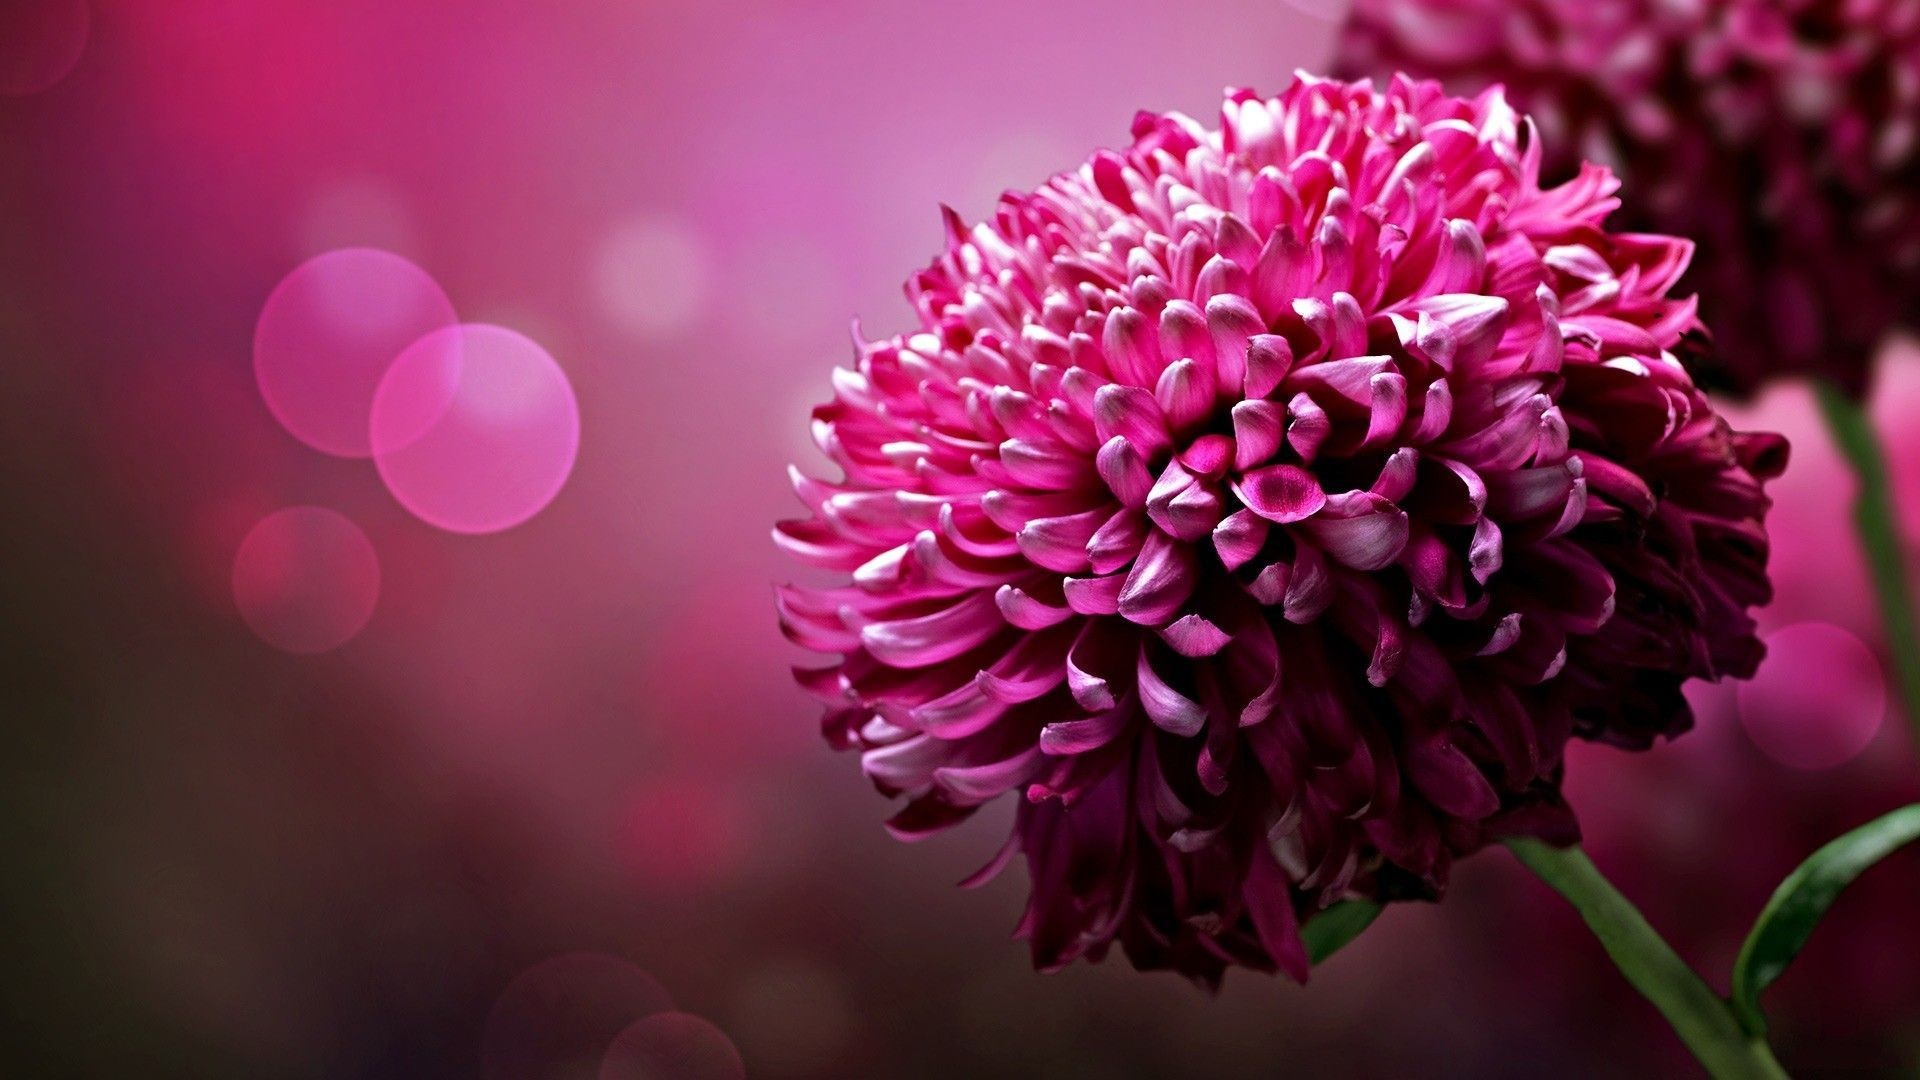 Flowers Wallpapers HD Android Apps on Google Play 1920×1080 Flowers  Wallpapers Hd (28